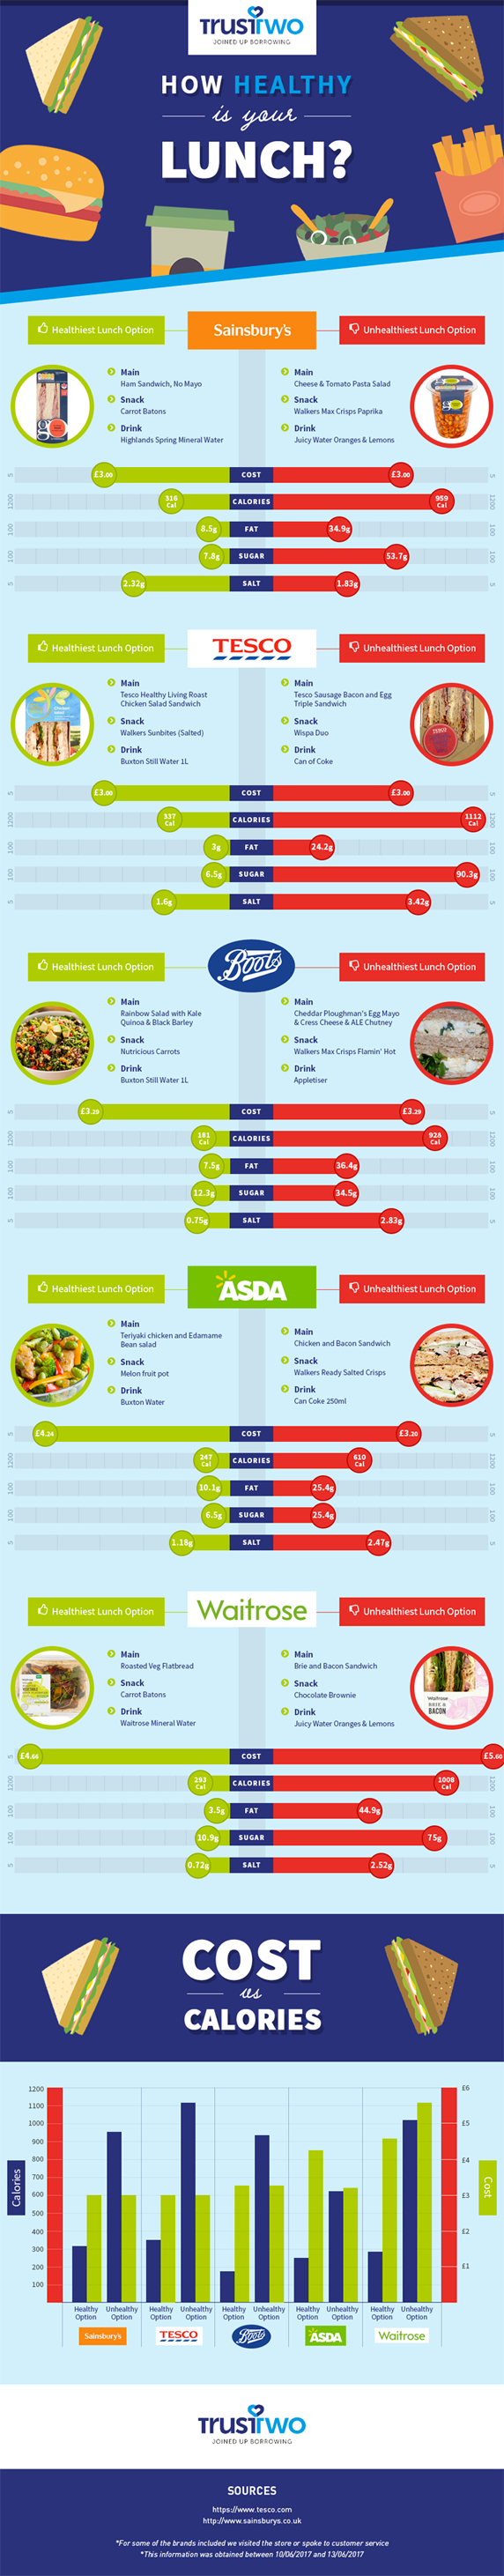 How Healthy Is Your Lunch?